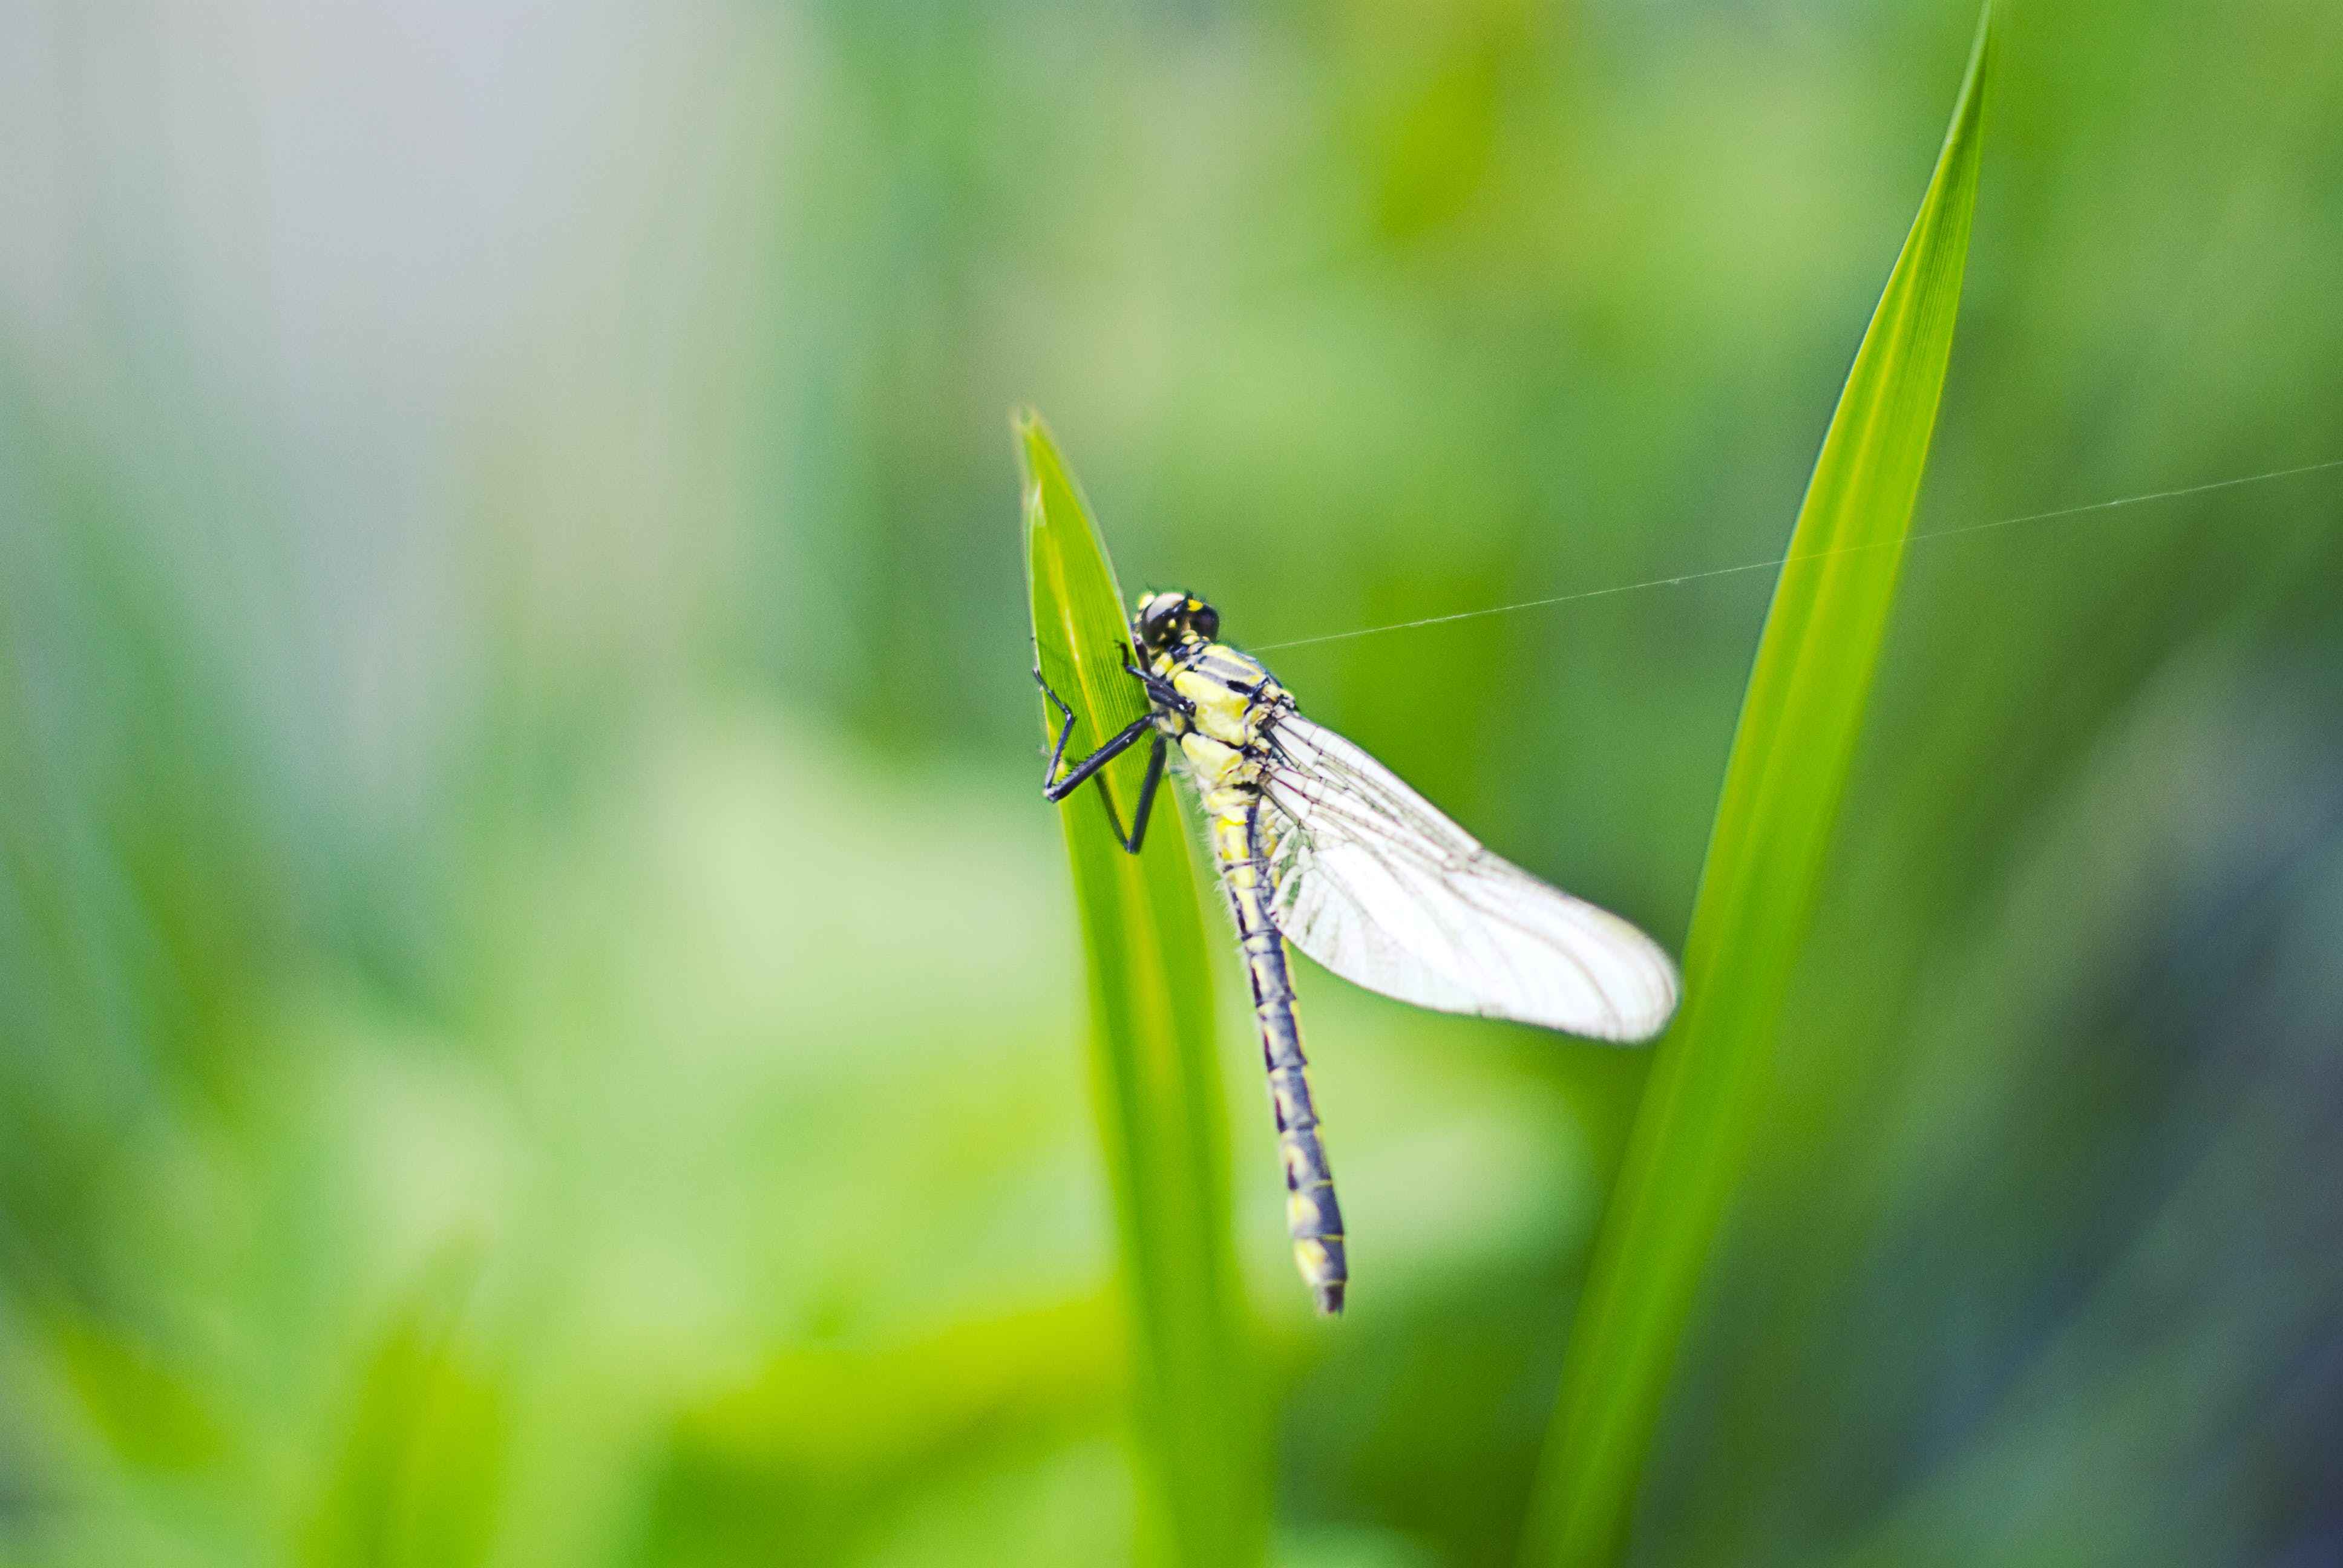 Selective Focus Photo of Yellow Damselfly on Green Leaf